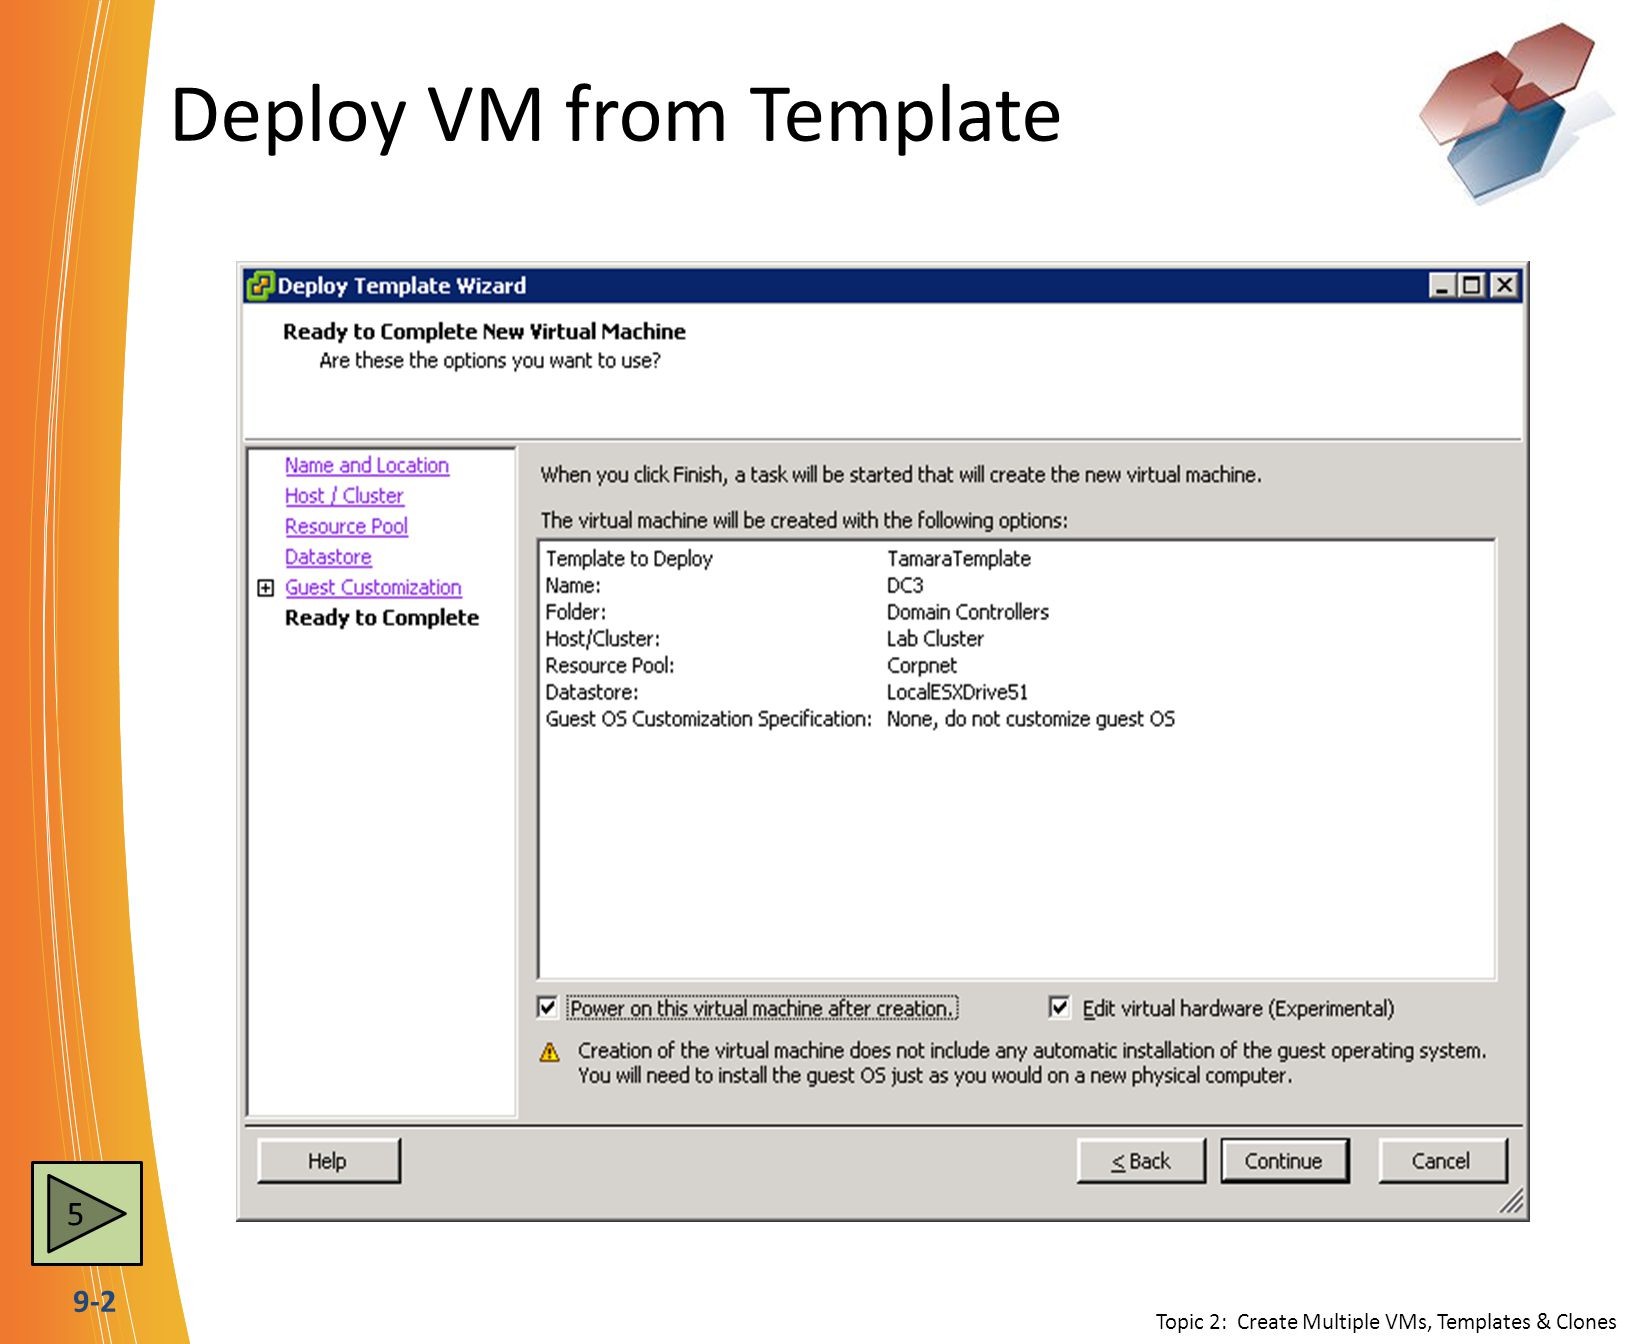 9-3 VM Properties - Hardware tab Topic 5: Manage VMs DEVICEAddEditRemove MemoryOFF CPUsOFF FloppyOFFON / OFFOFF CD/DVDOFFON / OFFOFF Network AdapterOFFON / OFFOFF SCSI ControllerOFF Hard DiskON / OFFOFF Parallel PortOFF Serial PortOFF ON = VM Powered On OFF = VM Powered Off 8